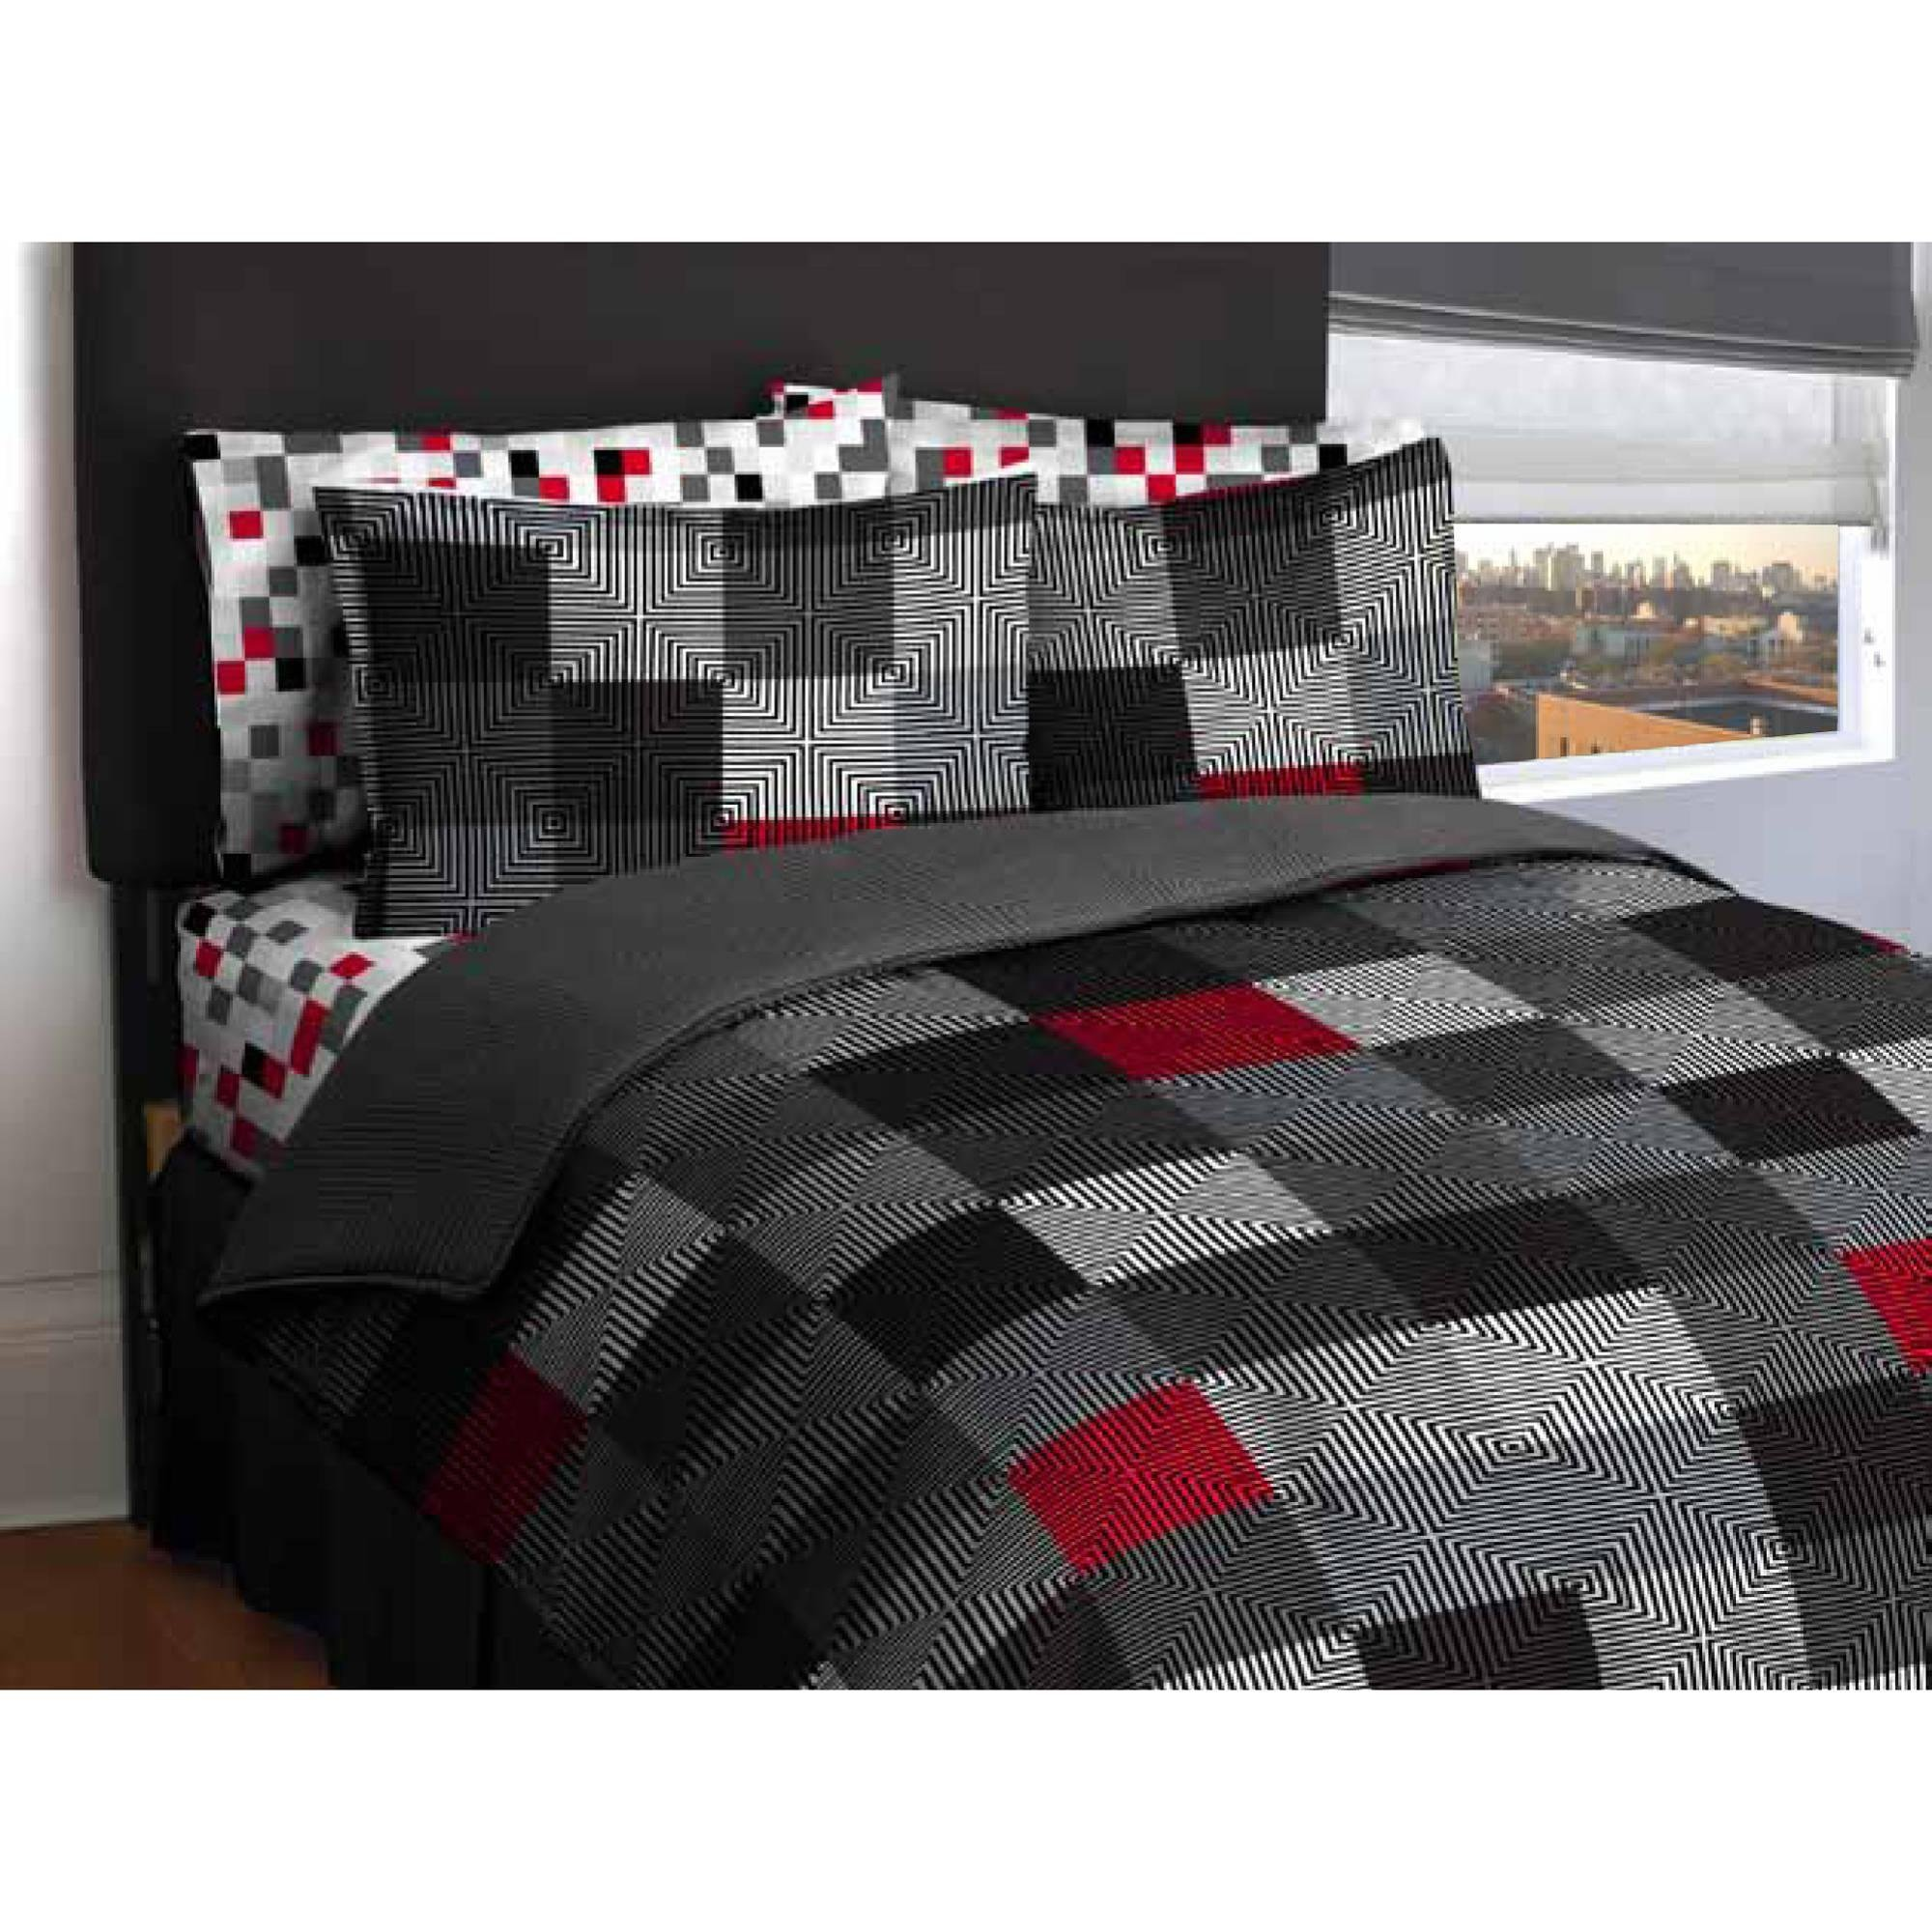 Ln Twin size Teen Boys Red,Gray, White, Black Geo Blocks comforter with sheet set, Bed in a Bag Bedding Set (Twin)